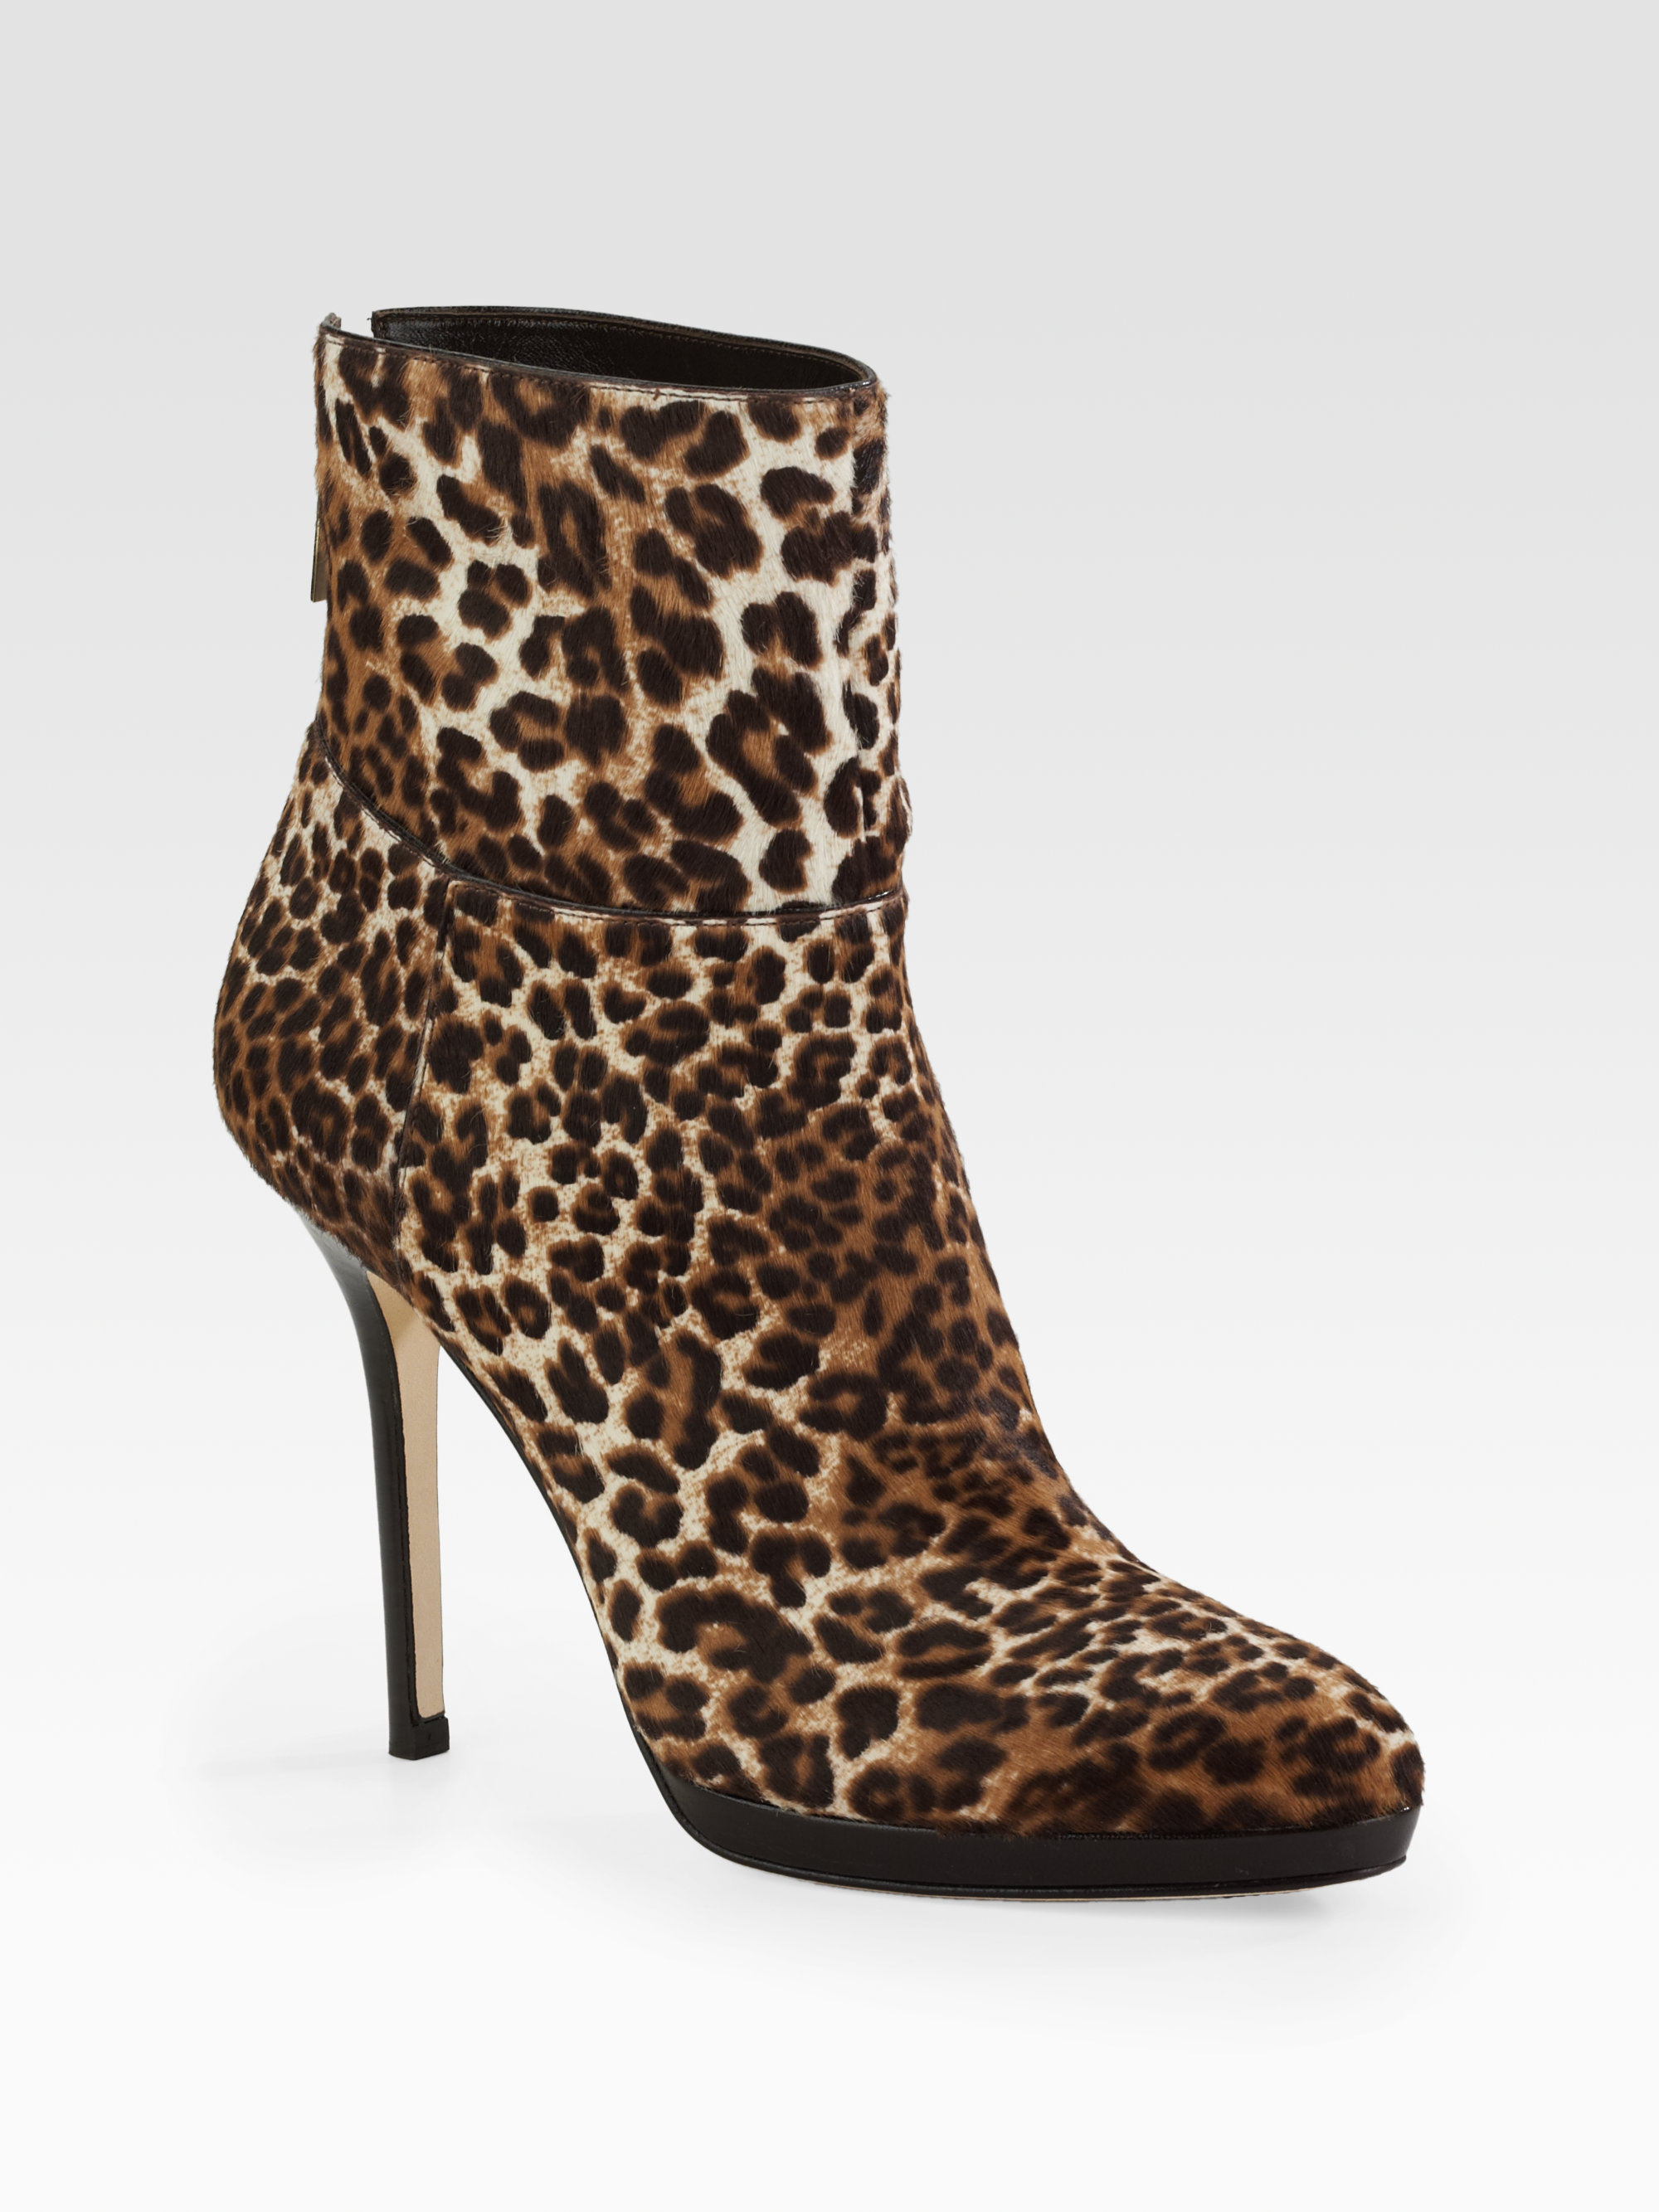 Jimmy Choo Leather Animal Print Ankle Boots buy cheap 2014 unisex sale amazon 8SWQrbxSs